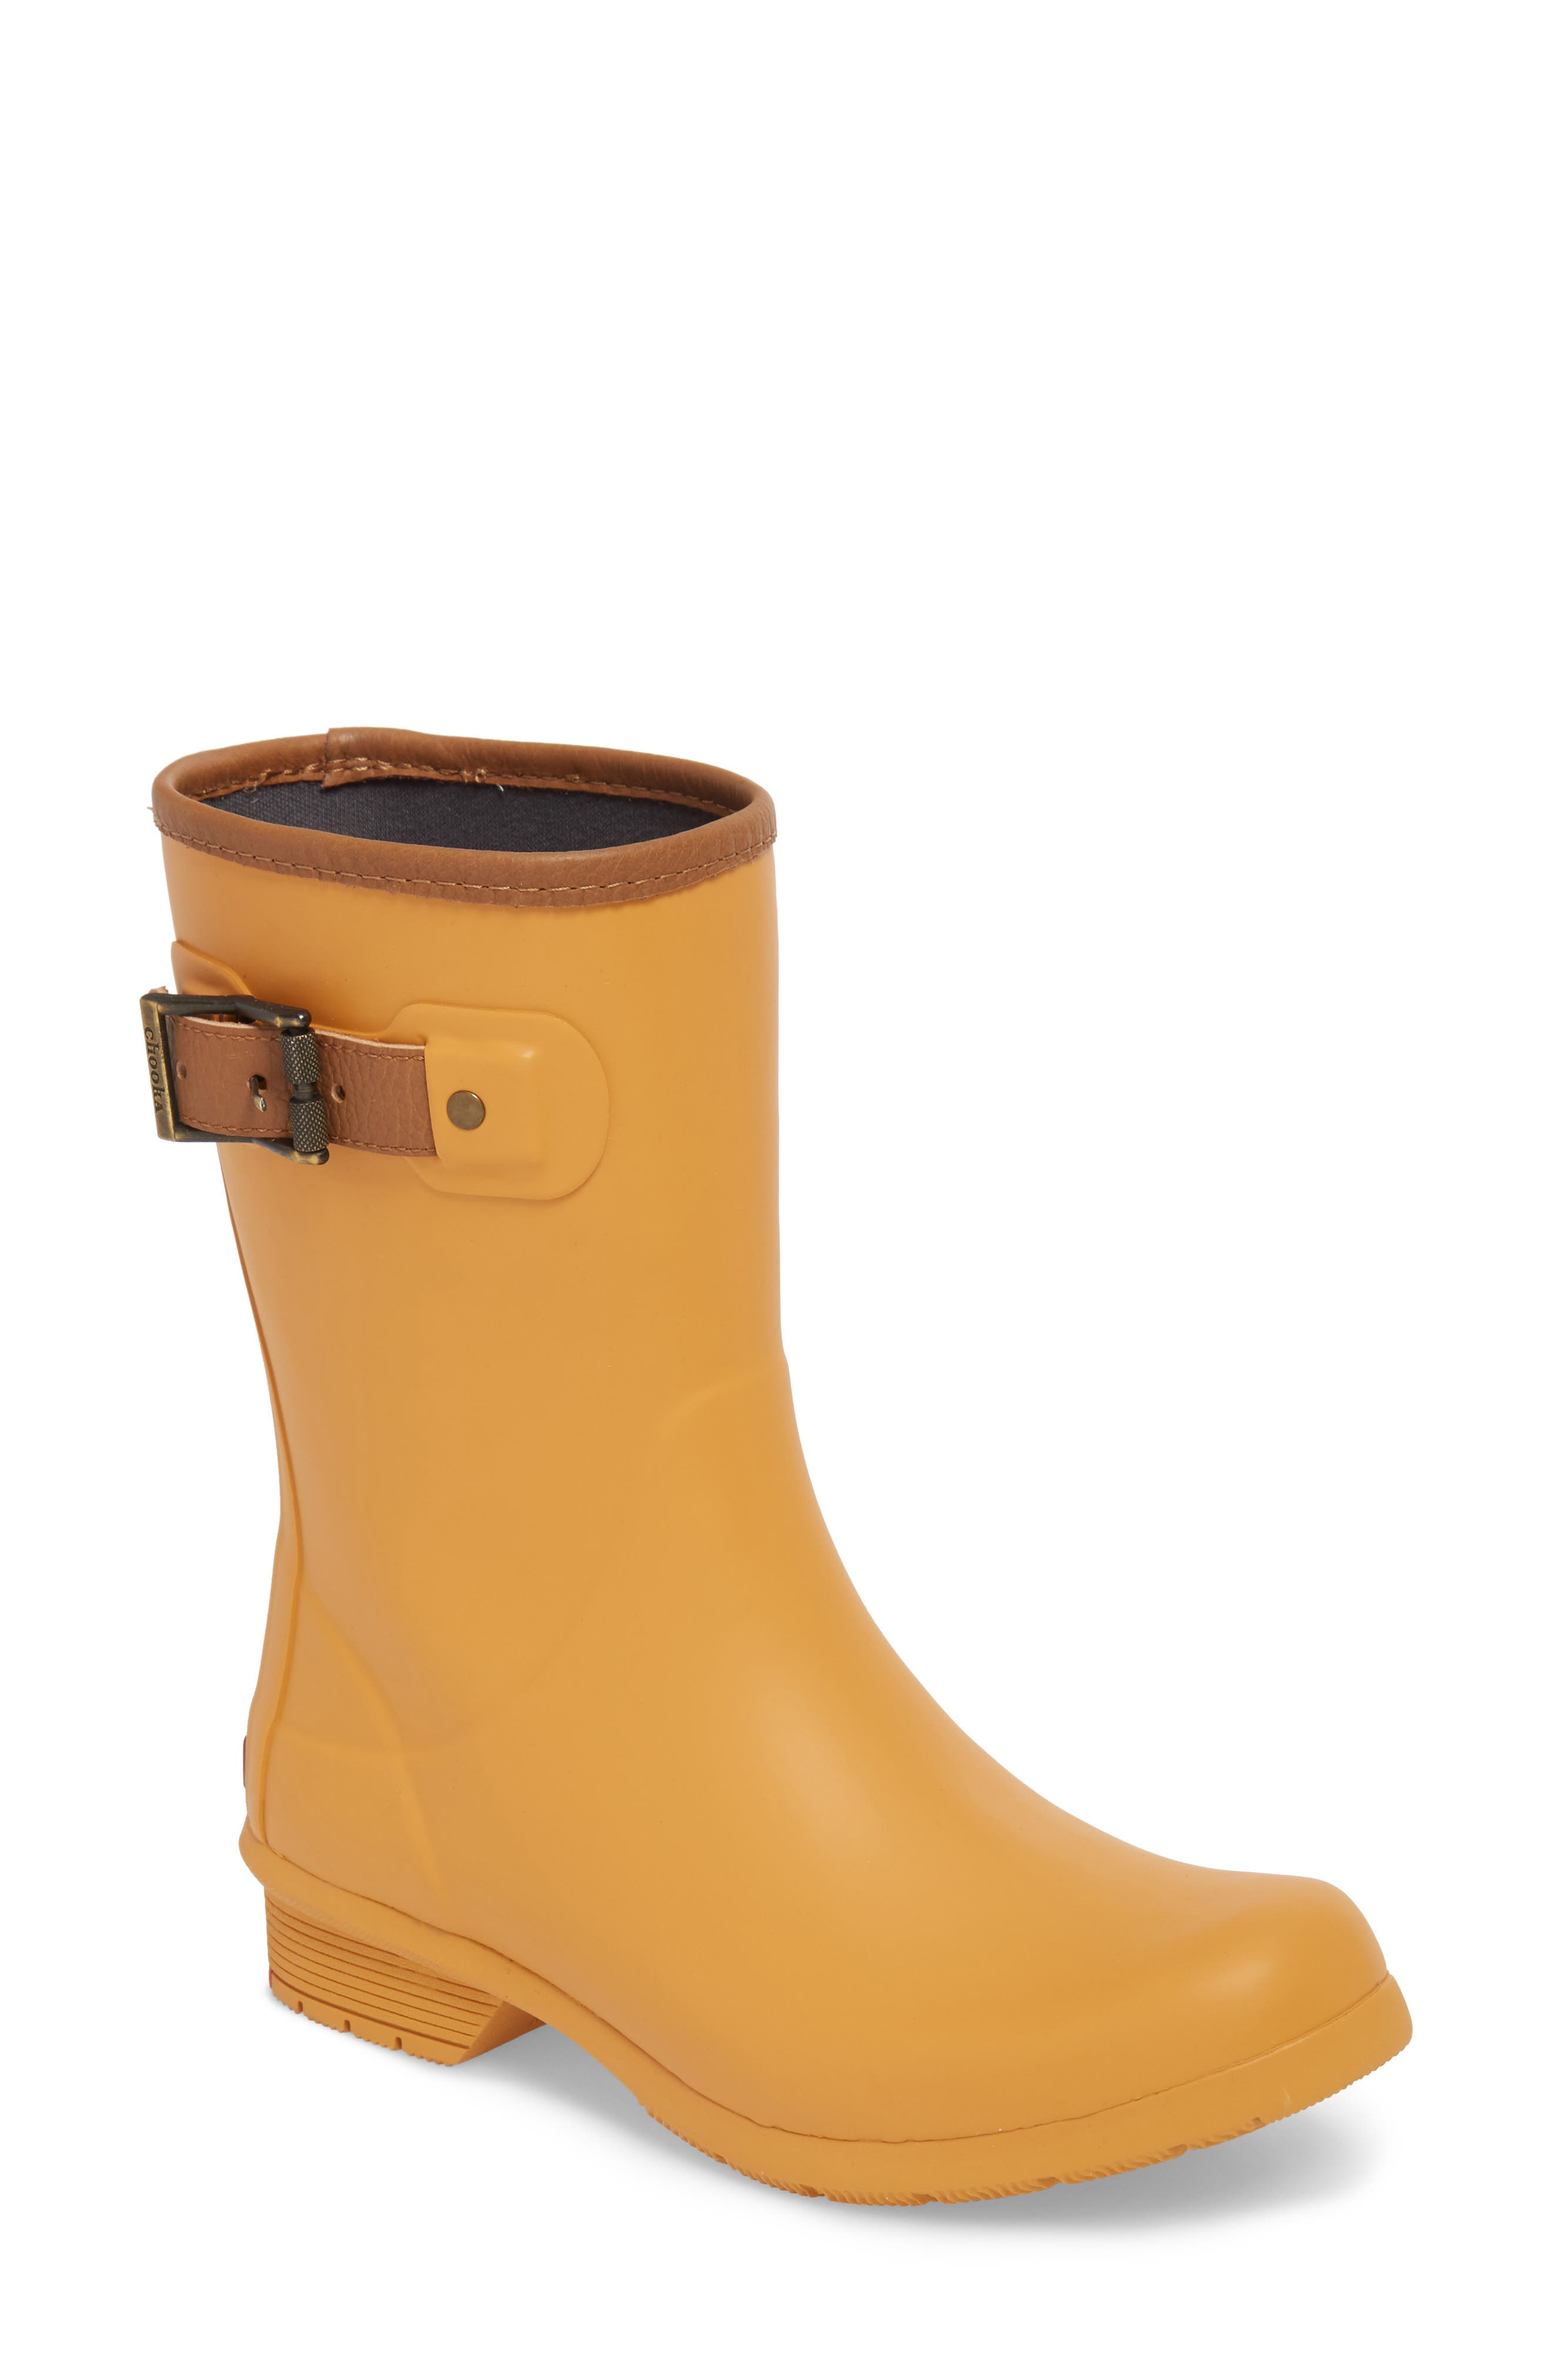 City Solid Mid Height Rain Boot,                             Main thumbnail 1, color,                             Saffron